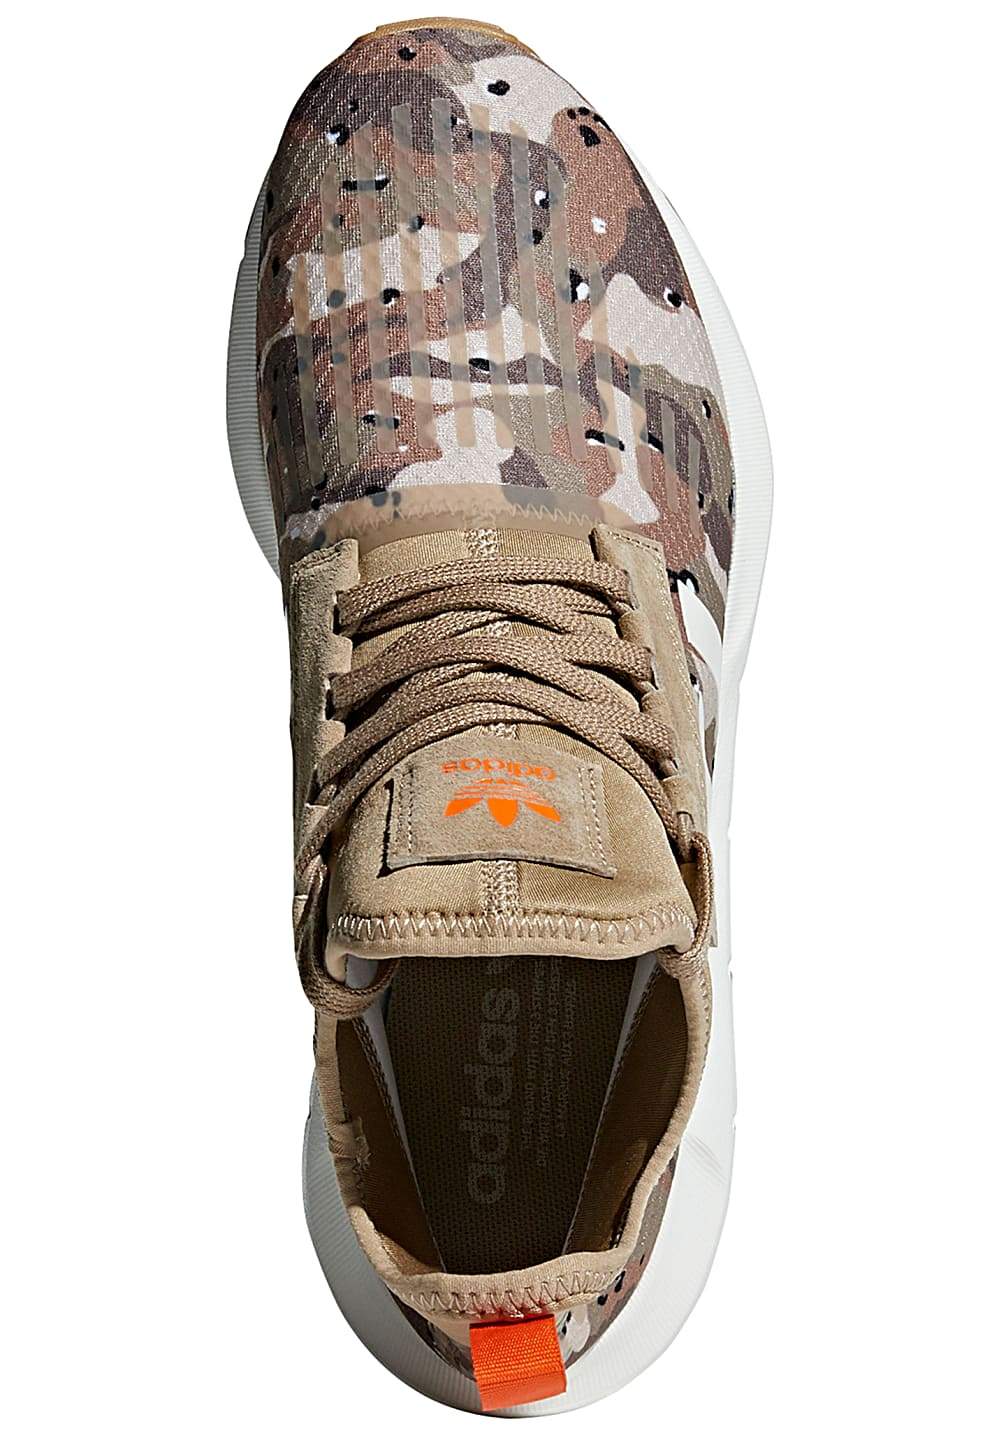 31b2faec39b41 Next. This product is currently out of stock. ADIDAS ORIGINALS. Swift Run  Barrier - Sneakers ...